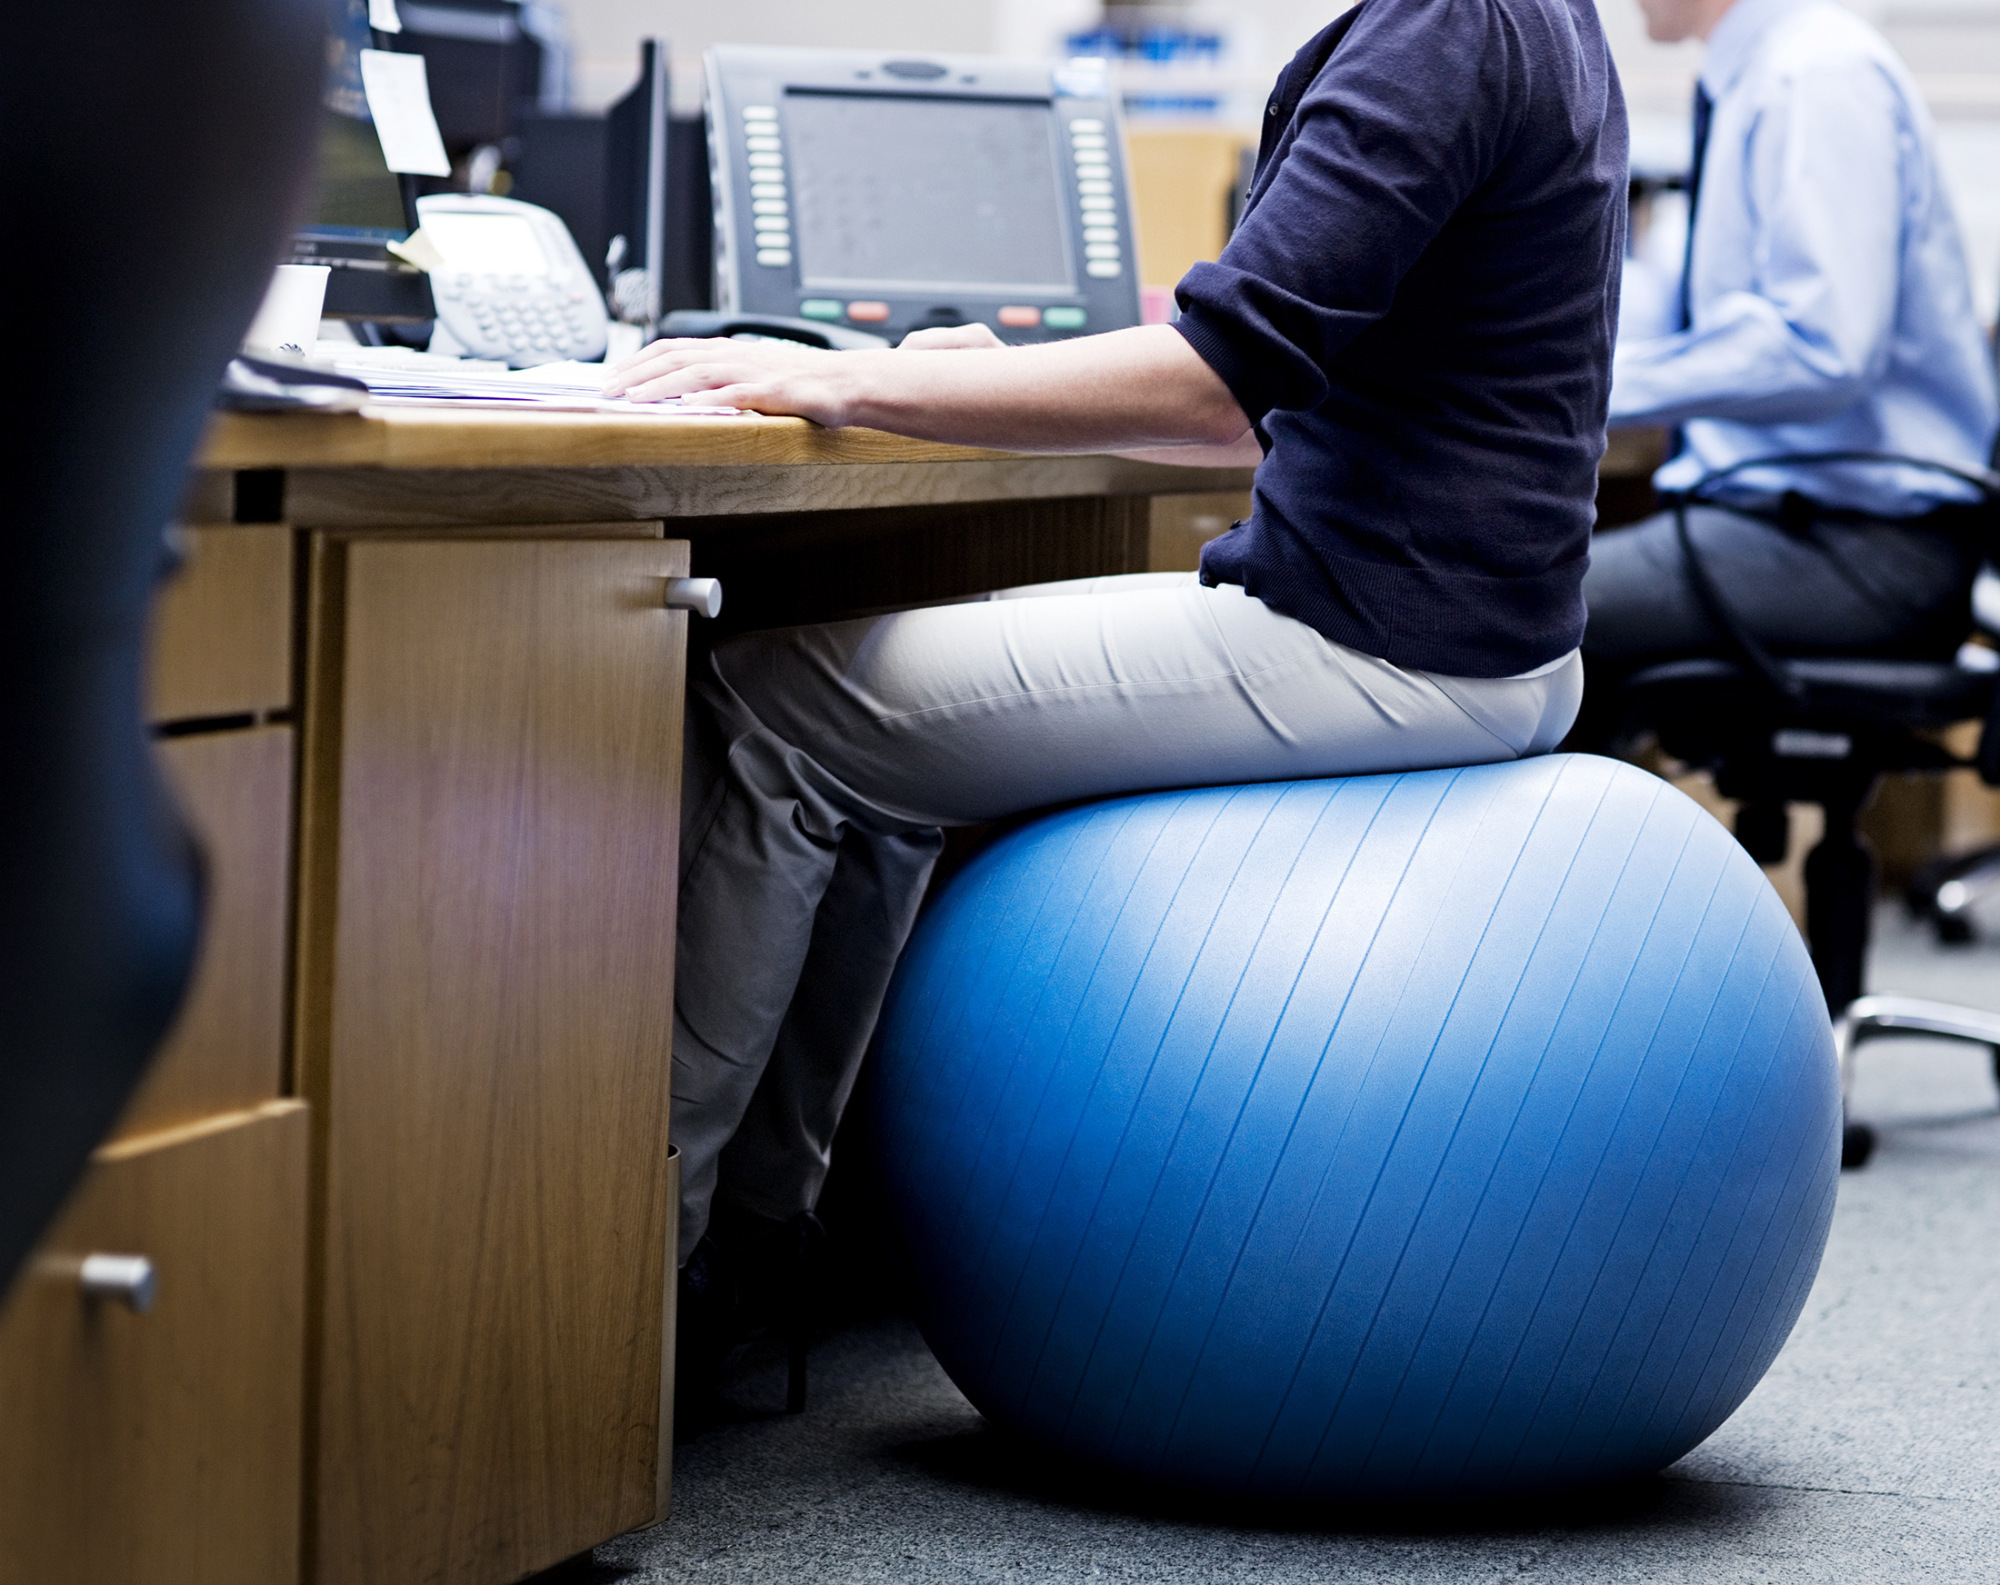 Yoga Ball Desk Chair Employee Wellness Programs Not So Voluntary Anymore